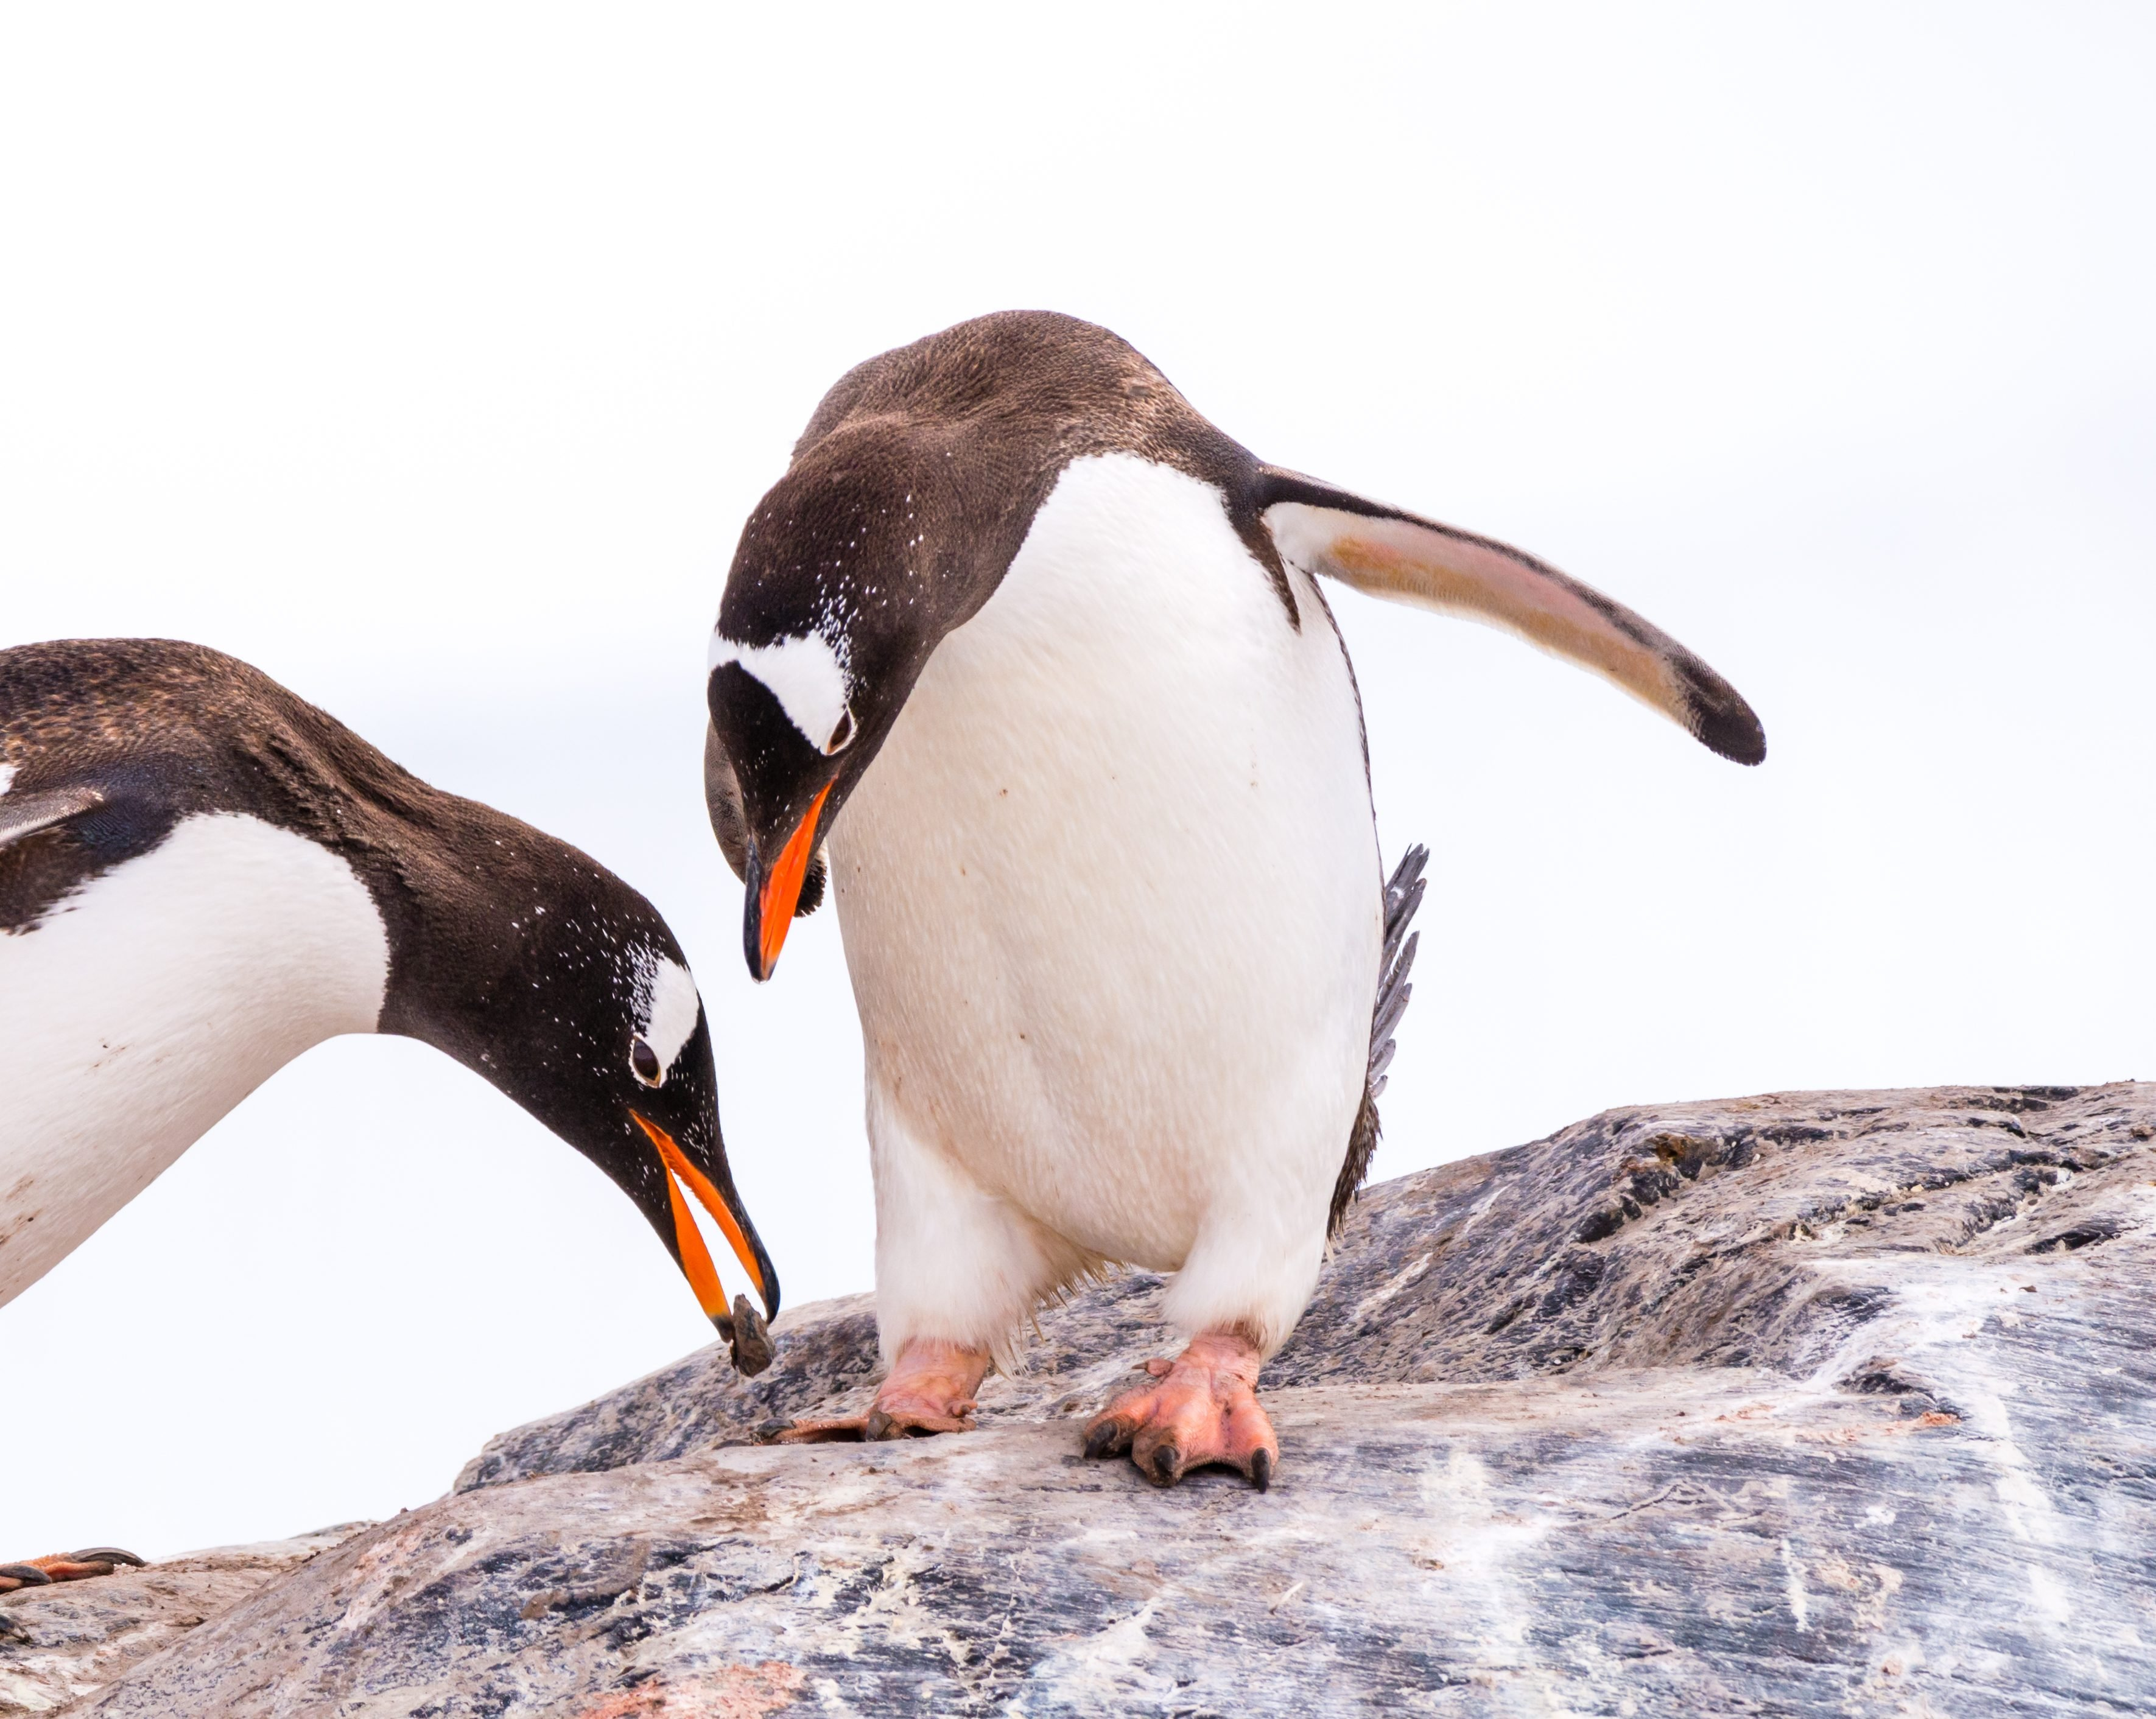 Male gentoo penguin offering stone to female, who is bowing while standing on rock, Mikkelsen Harbour on Trinity Island, Antarctica